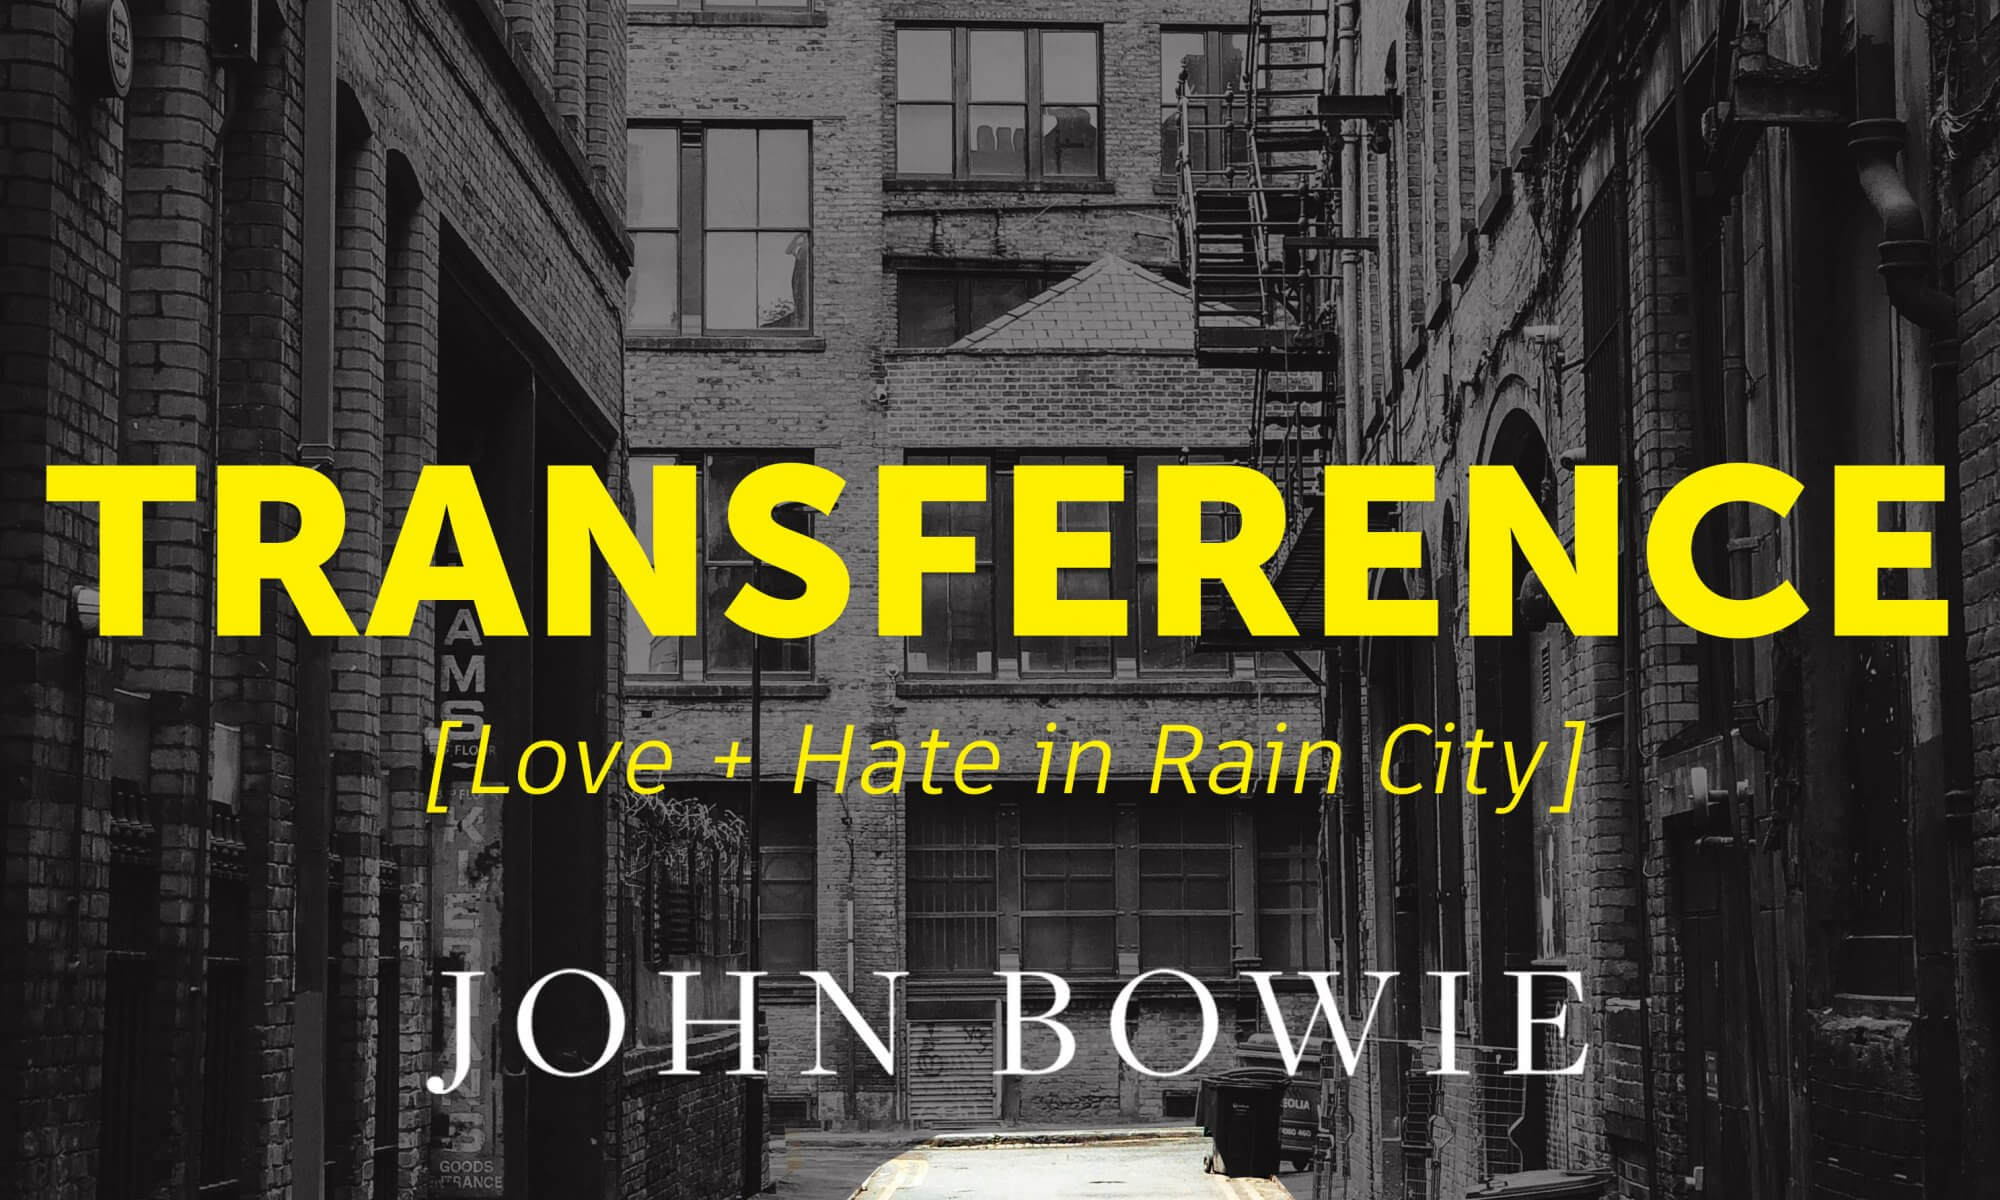 Transference by John Bowie